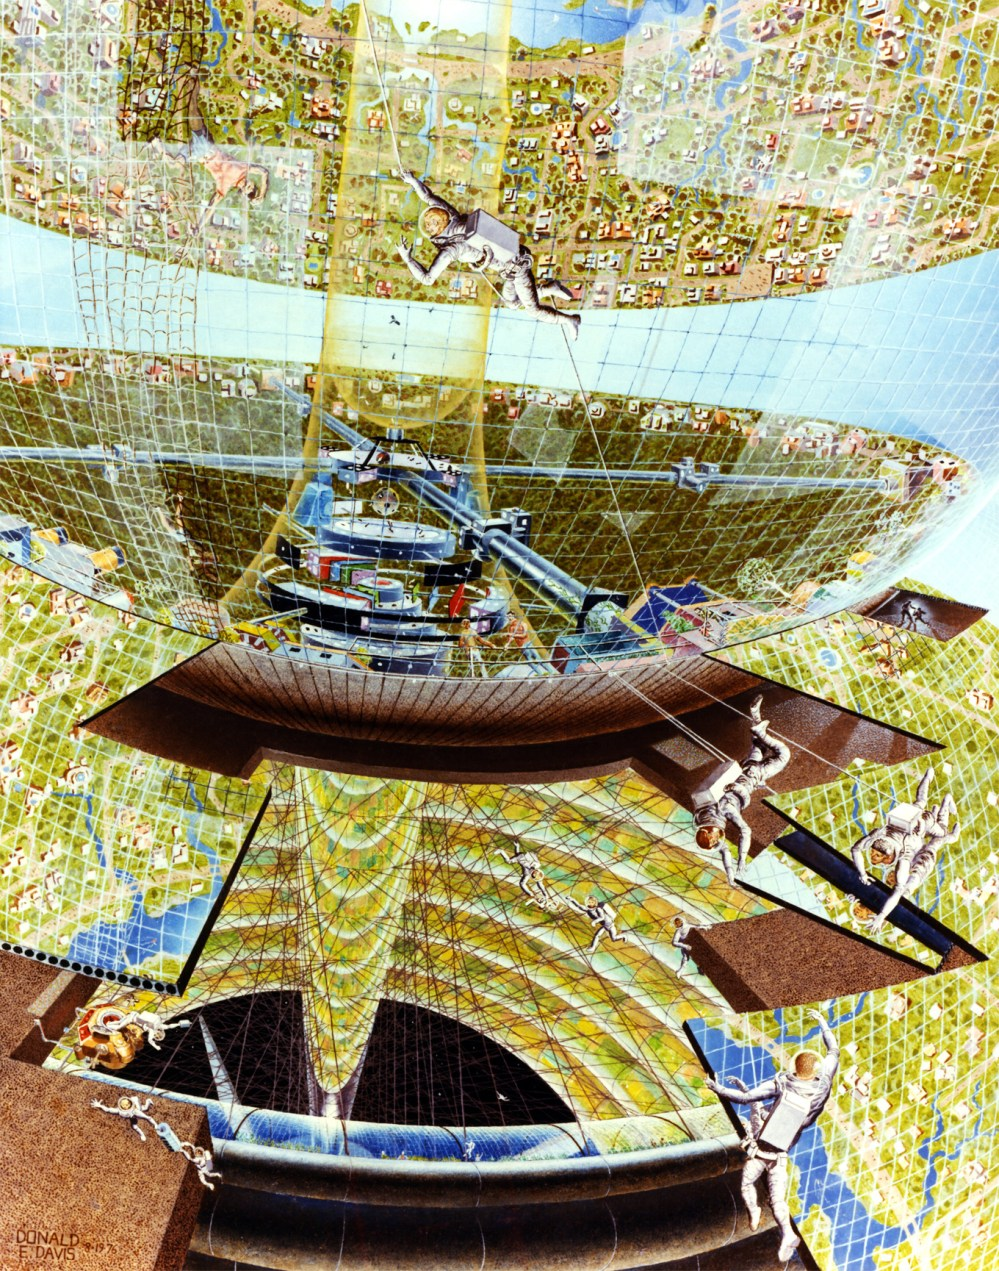 medium resolution of construction of a bernal sphere 1975 don davis nasa ames research center